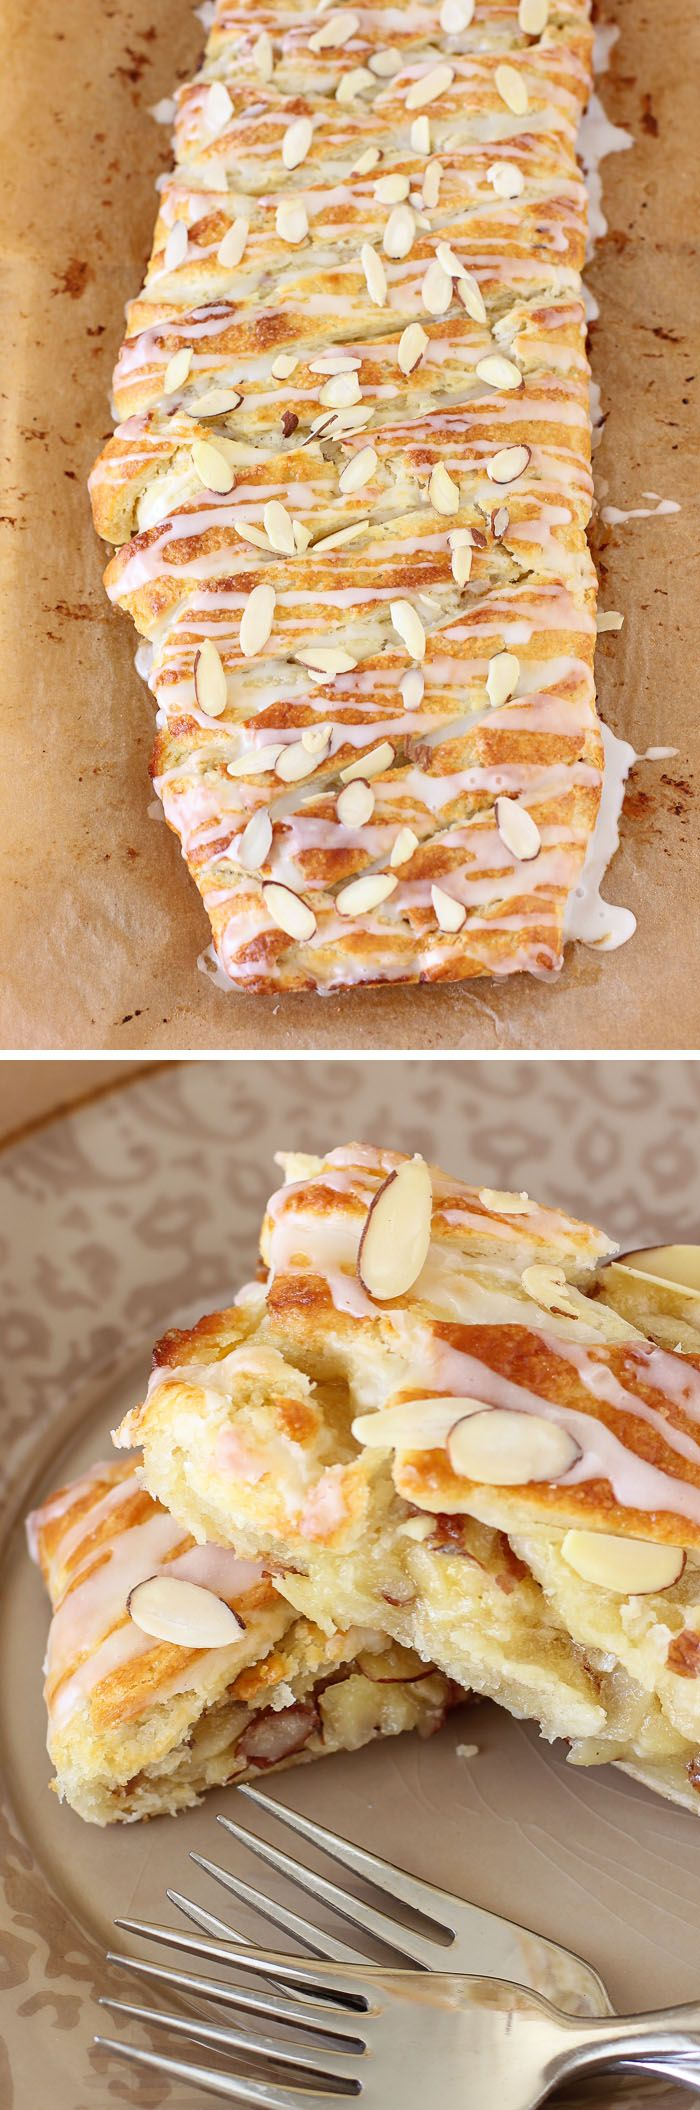 Buttery Almond Pastry Braid: If you love almond — almond pastries, almond croissants — this simple recipe is perfect for you!